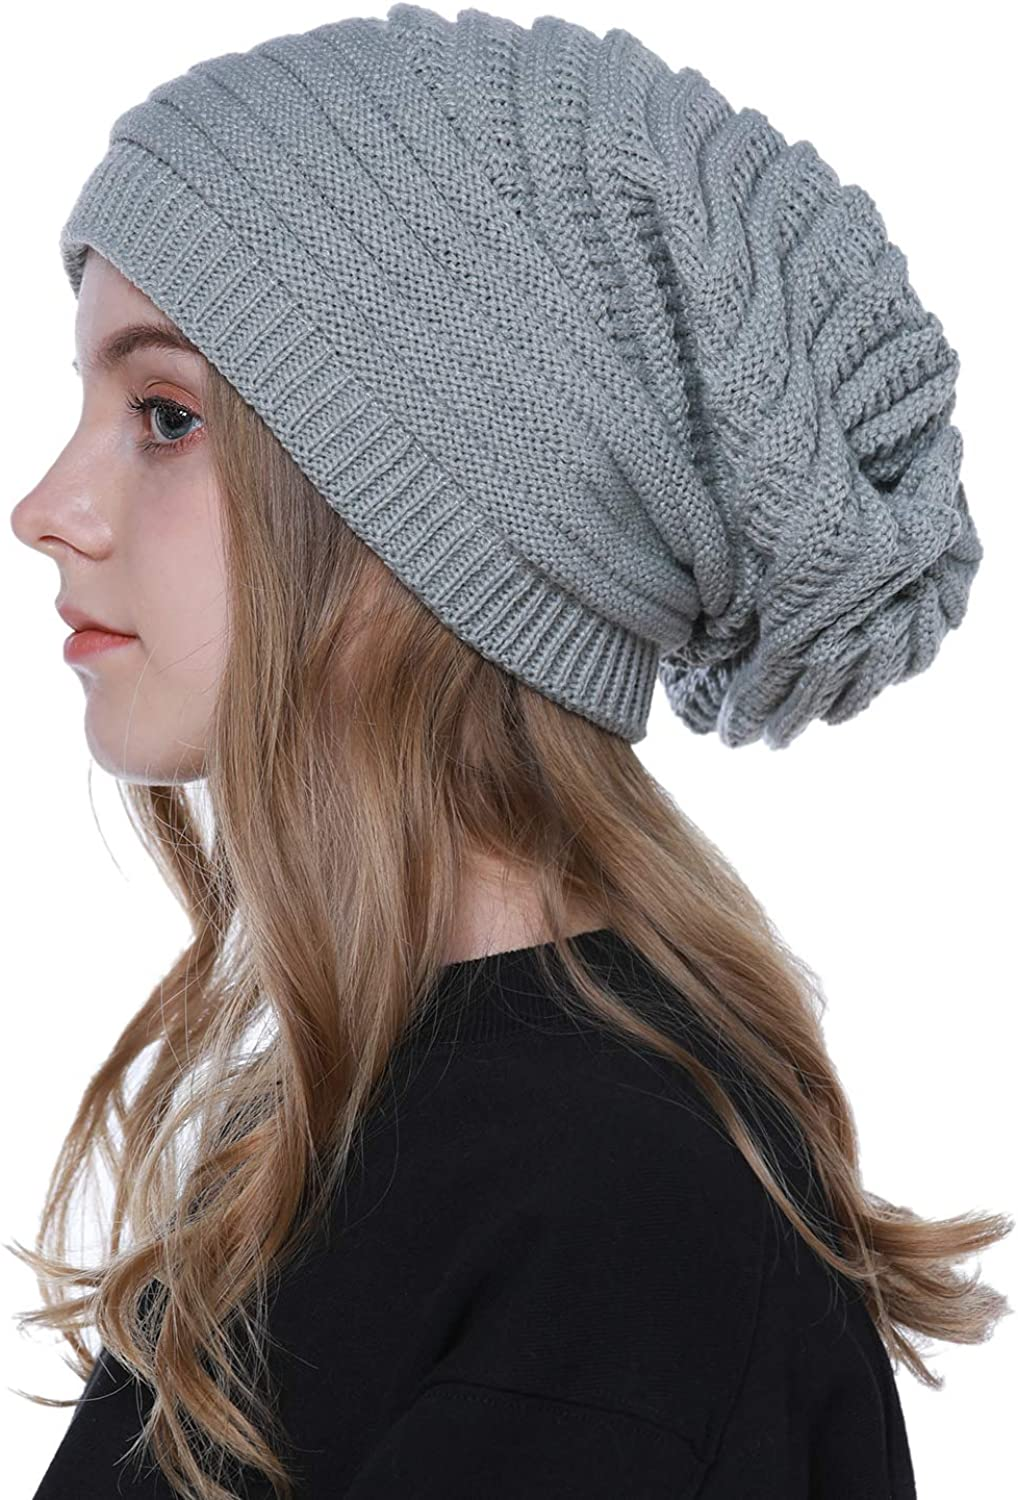 LADIES WOMENS MENS WINTER KNITTED WOLLY BEANIE SKI HAT SLOUCH OVERSIZED THERMAL